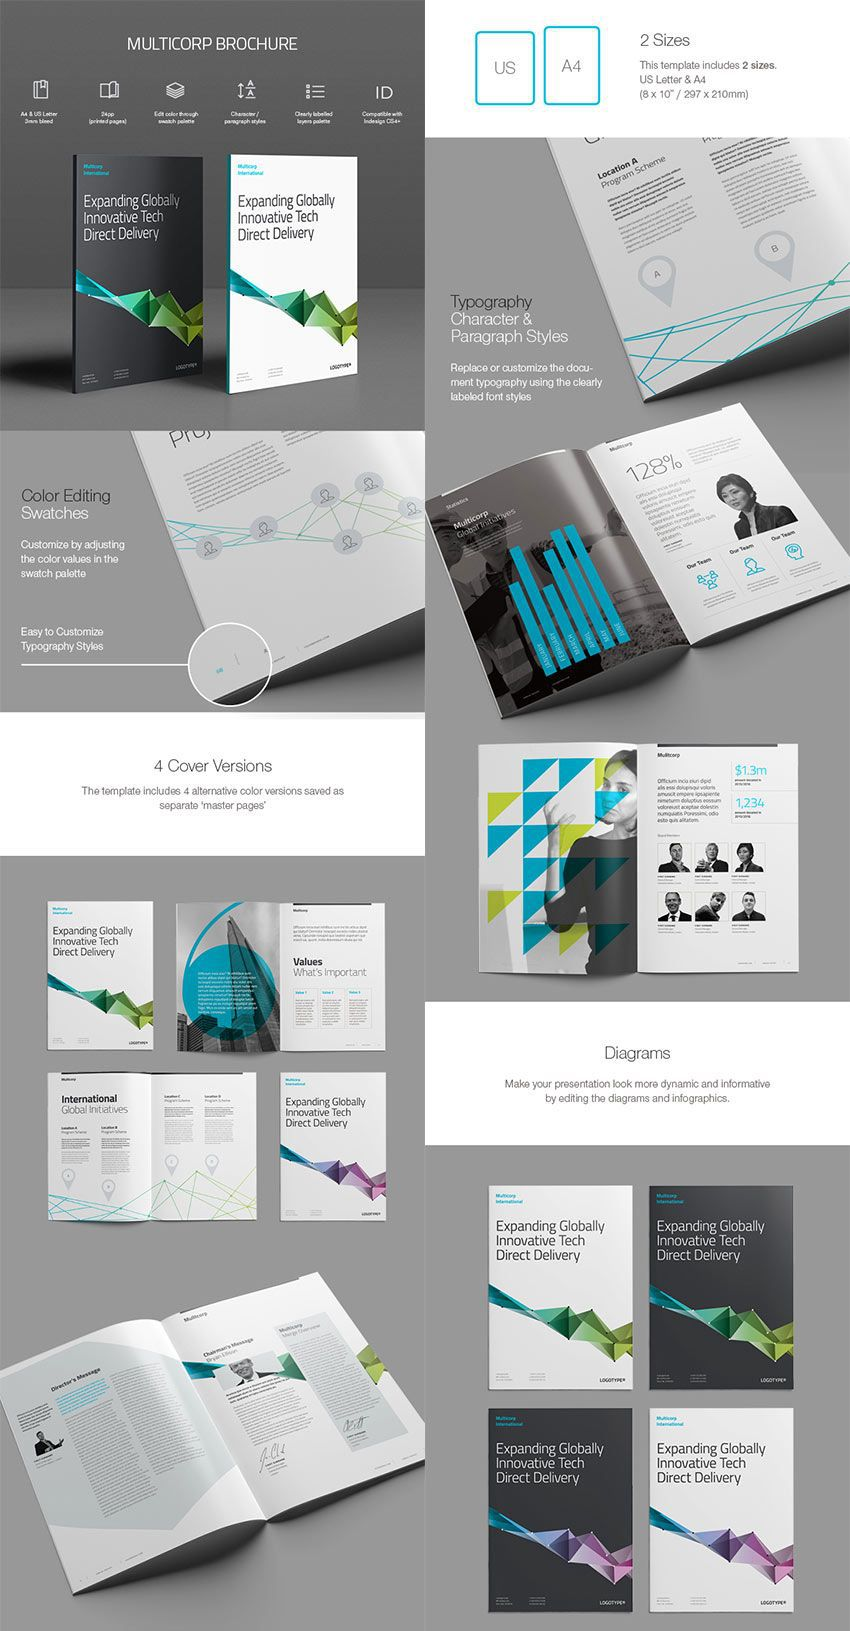 000 Unbelievable Indesign A4 Brochure Template Free Download Highest Clarity Full